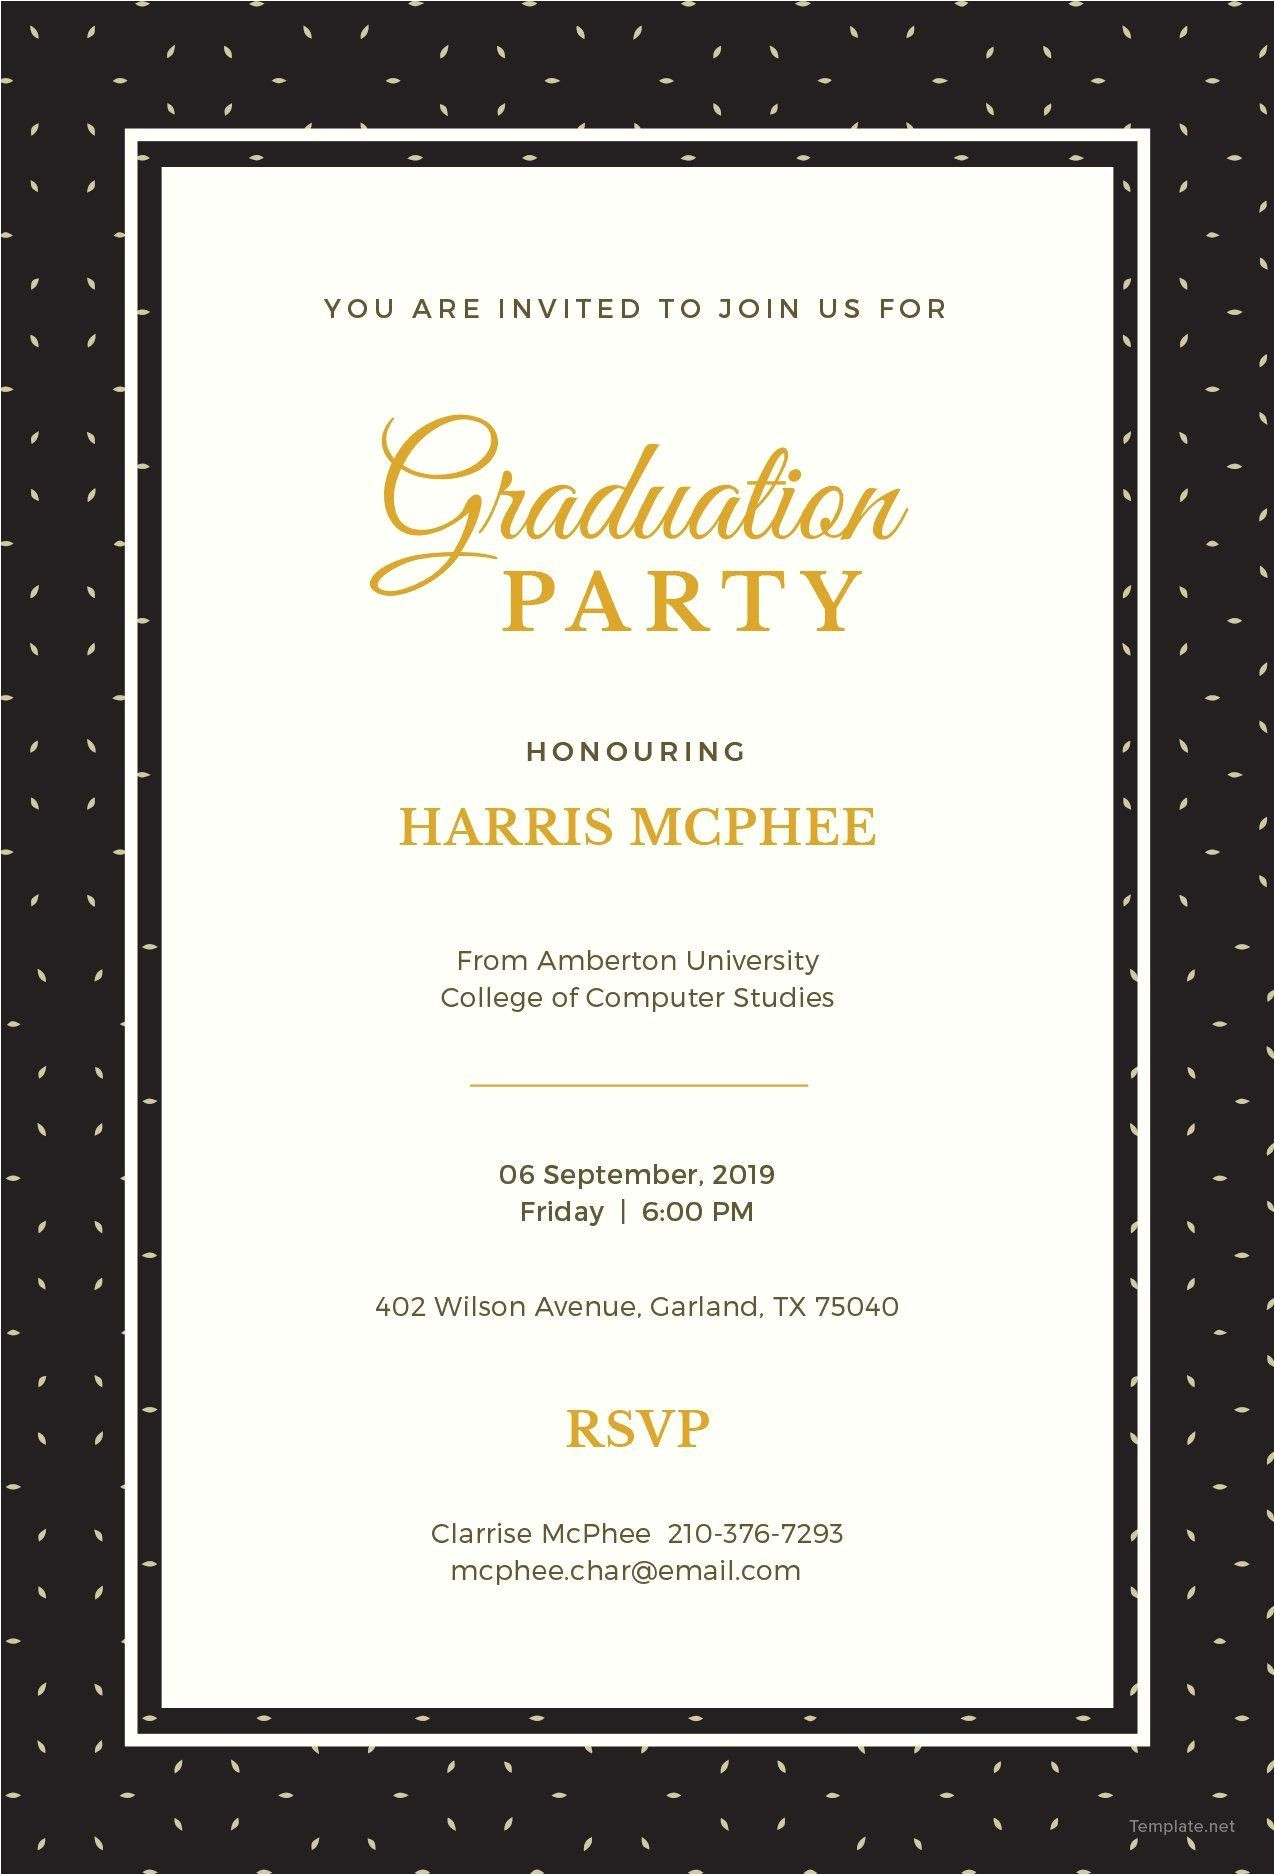 Wedding Card Name Sticker format Word Diy Graduation Invitations In 2020 with Images